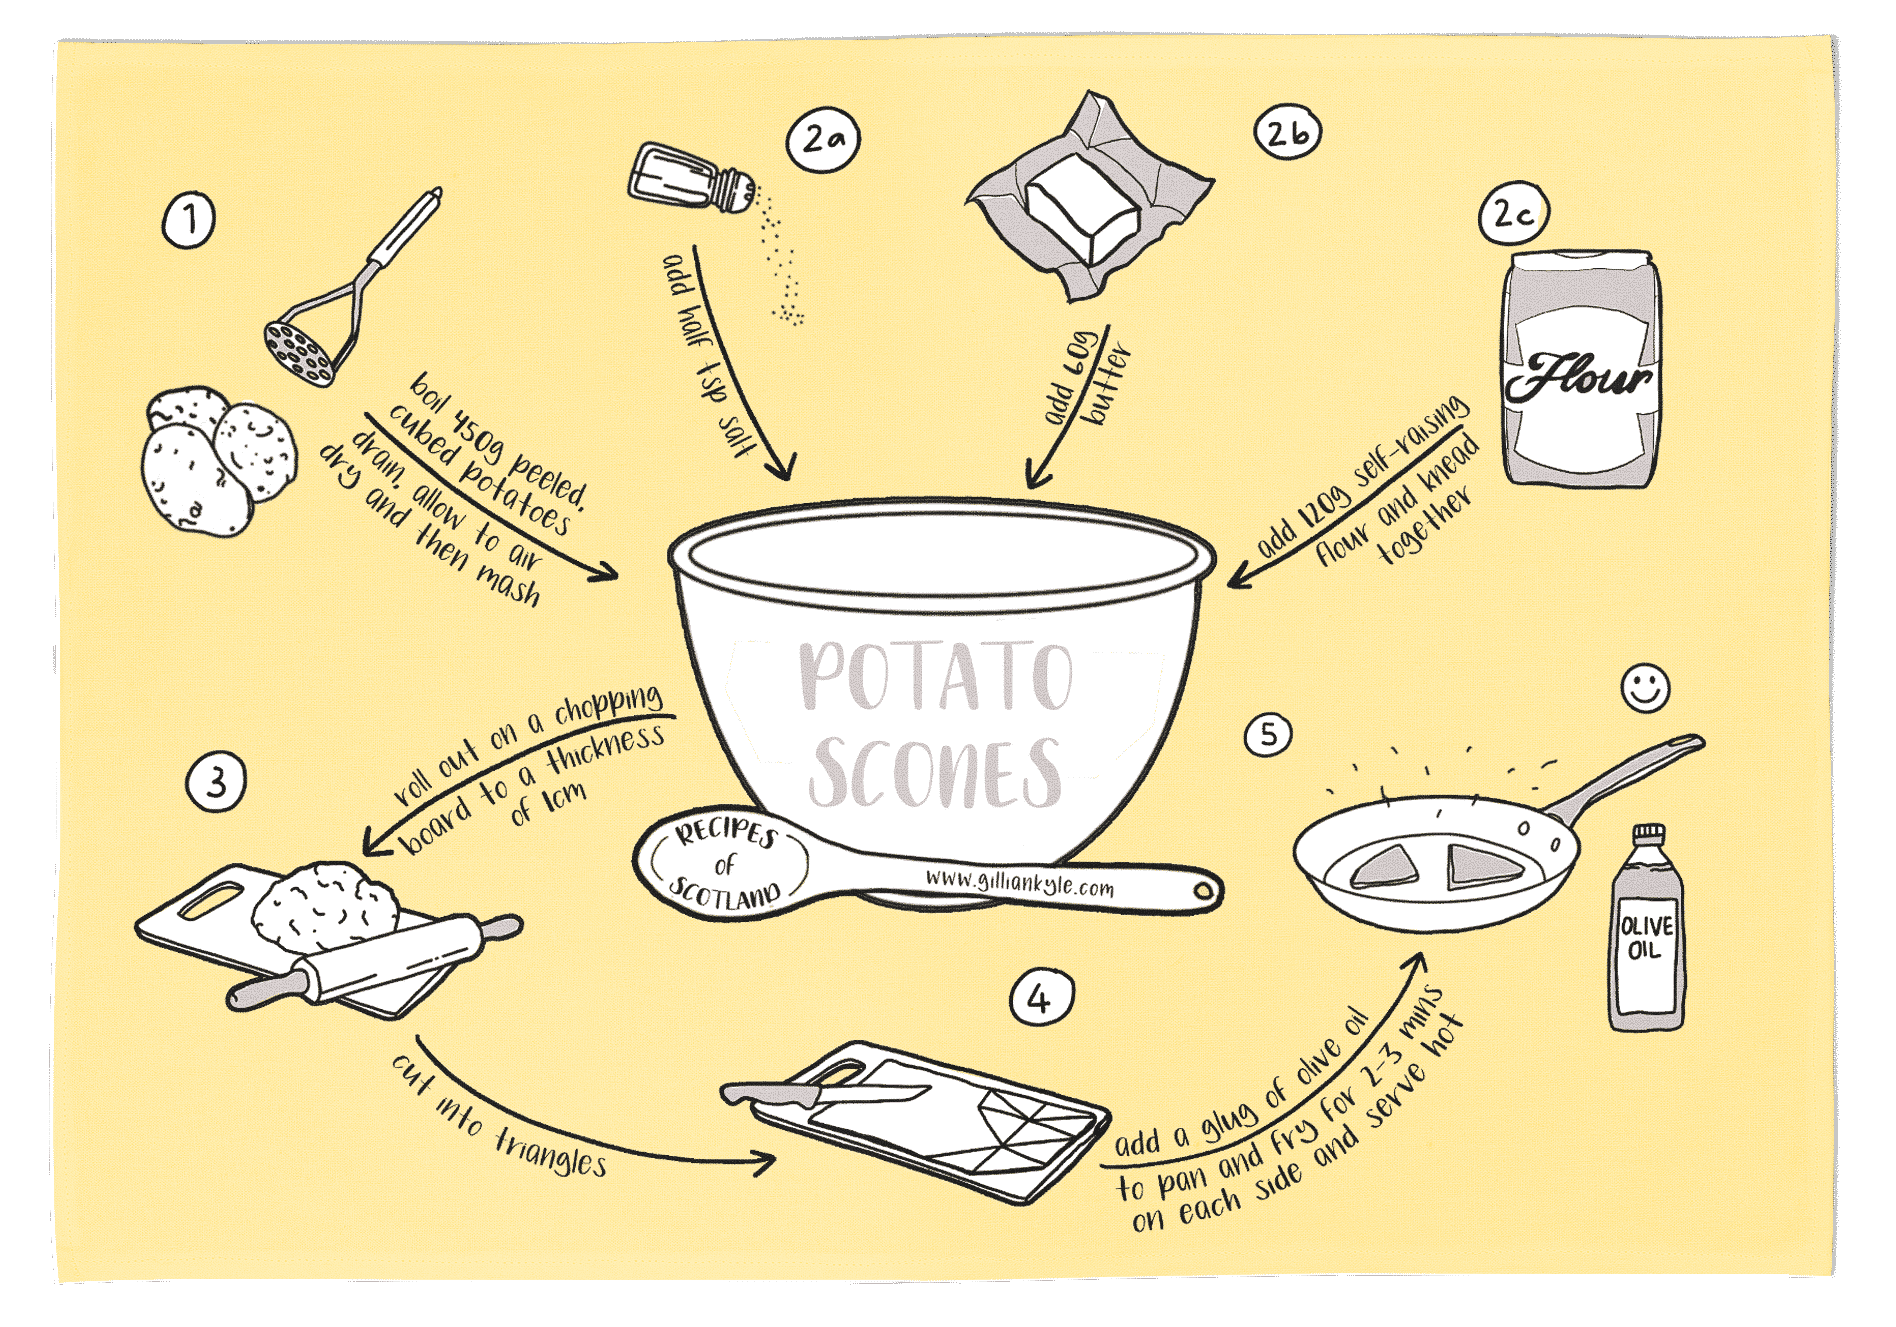 illustrated tattie scones recipe